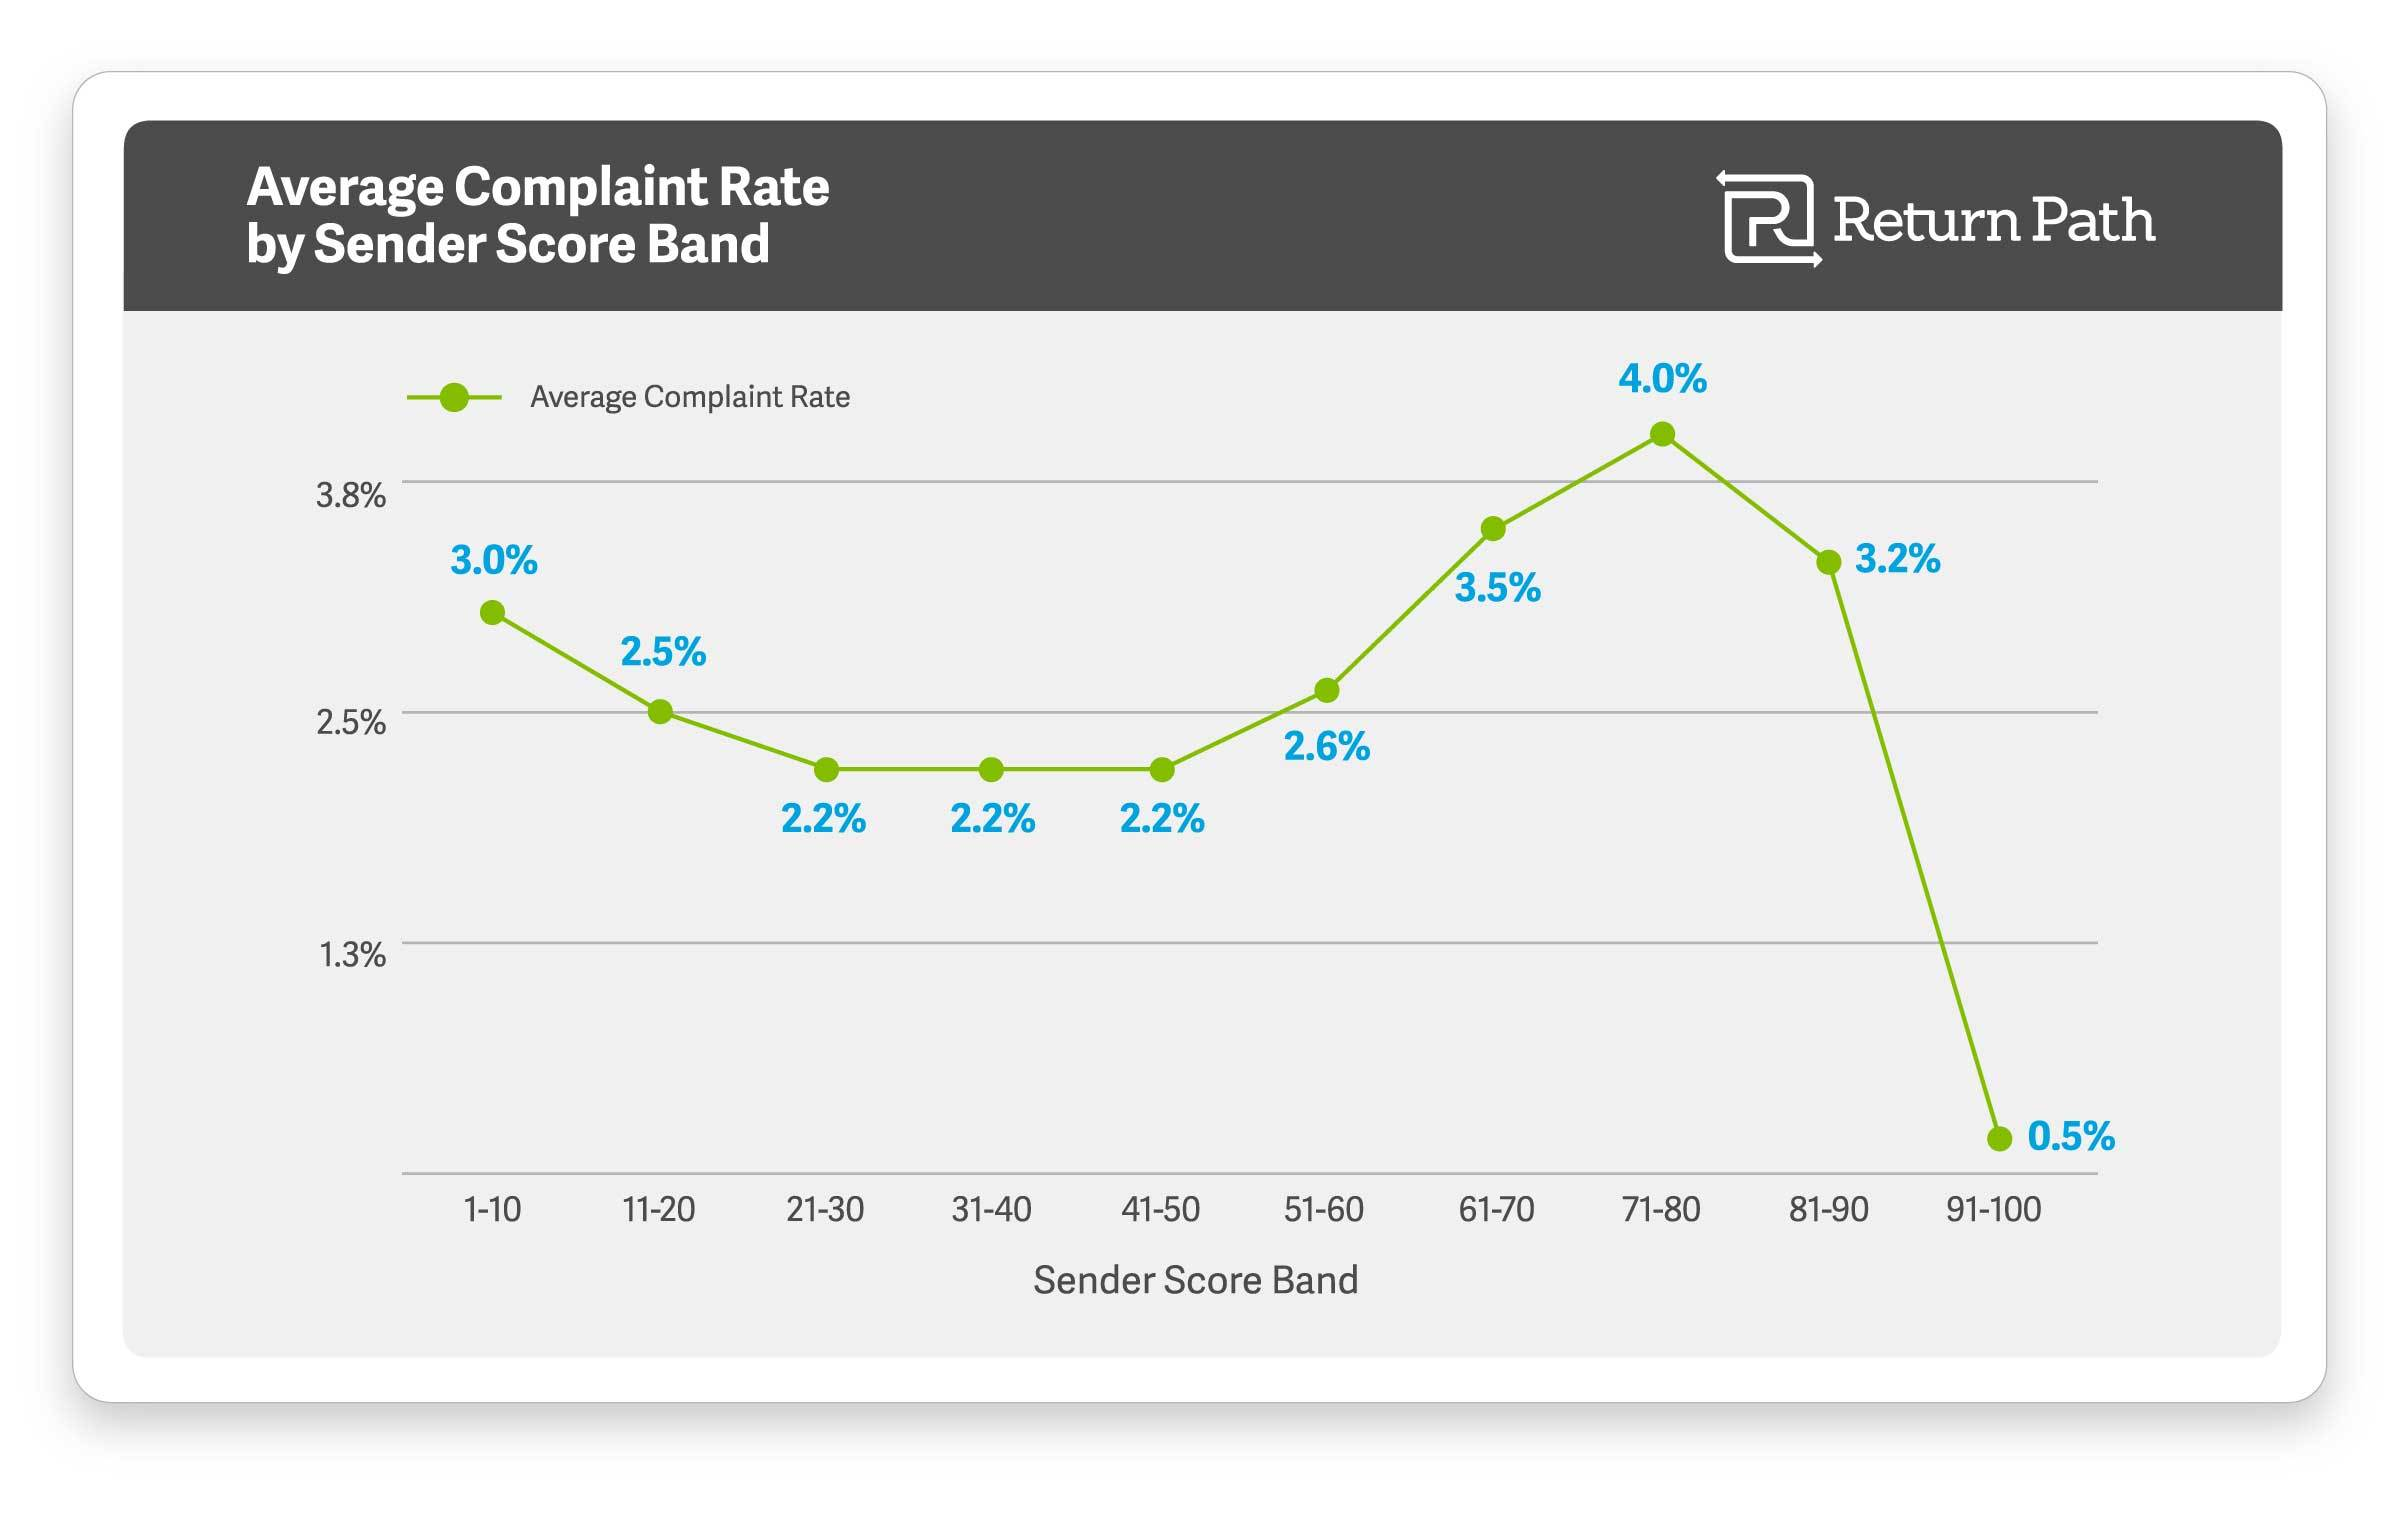 Senders scoring 91-100 had an average complaint rate of just 0.5 percent, according to Return Path's report. By contrast, the complaint rate for senders scoring 81-90 was 3.2 percent, and for senders scoring 71-80 it was 4.0 percent—a full eight times higher than the best senders. (Graphic: Business Wire)